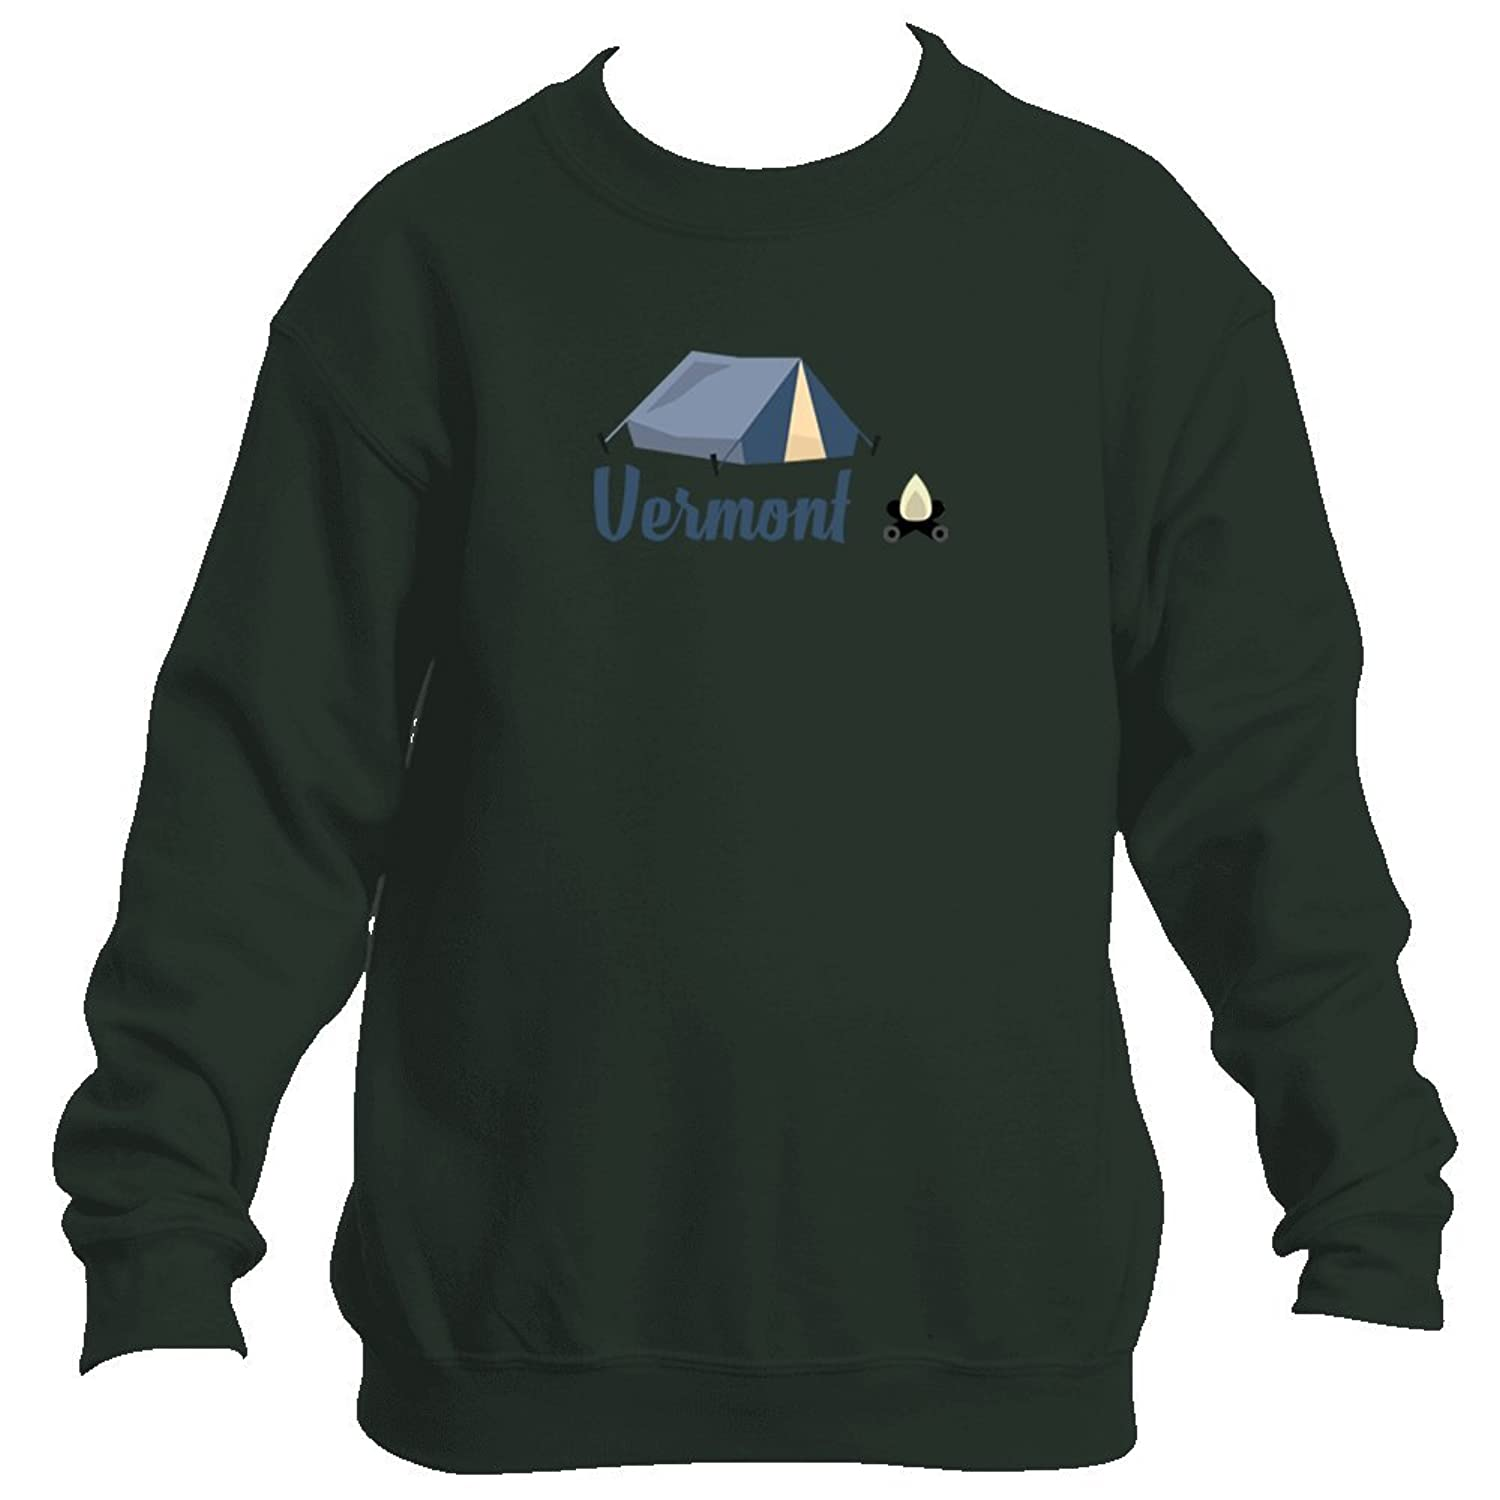 Top Camping & Camp Fire - Vermont Youth Fleece Crew Sweatshirt - Unisex free shipping